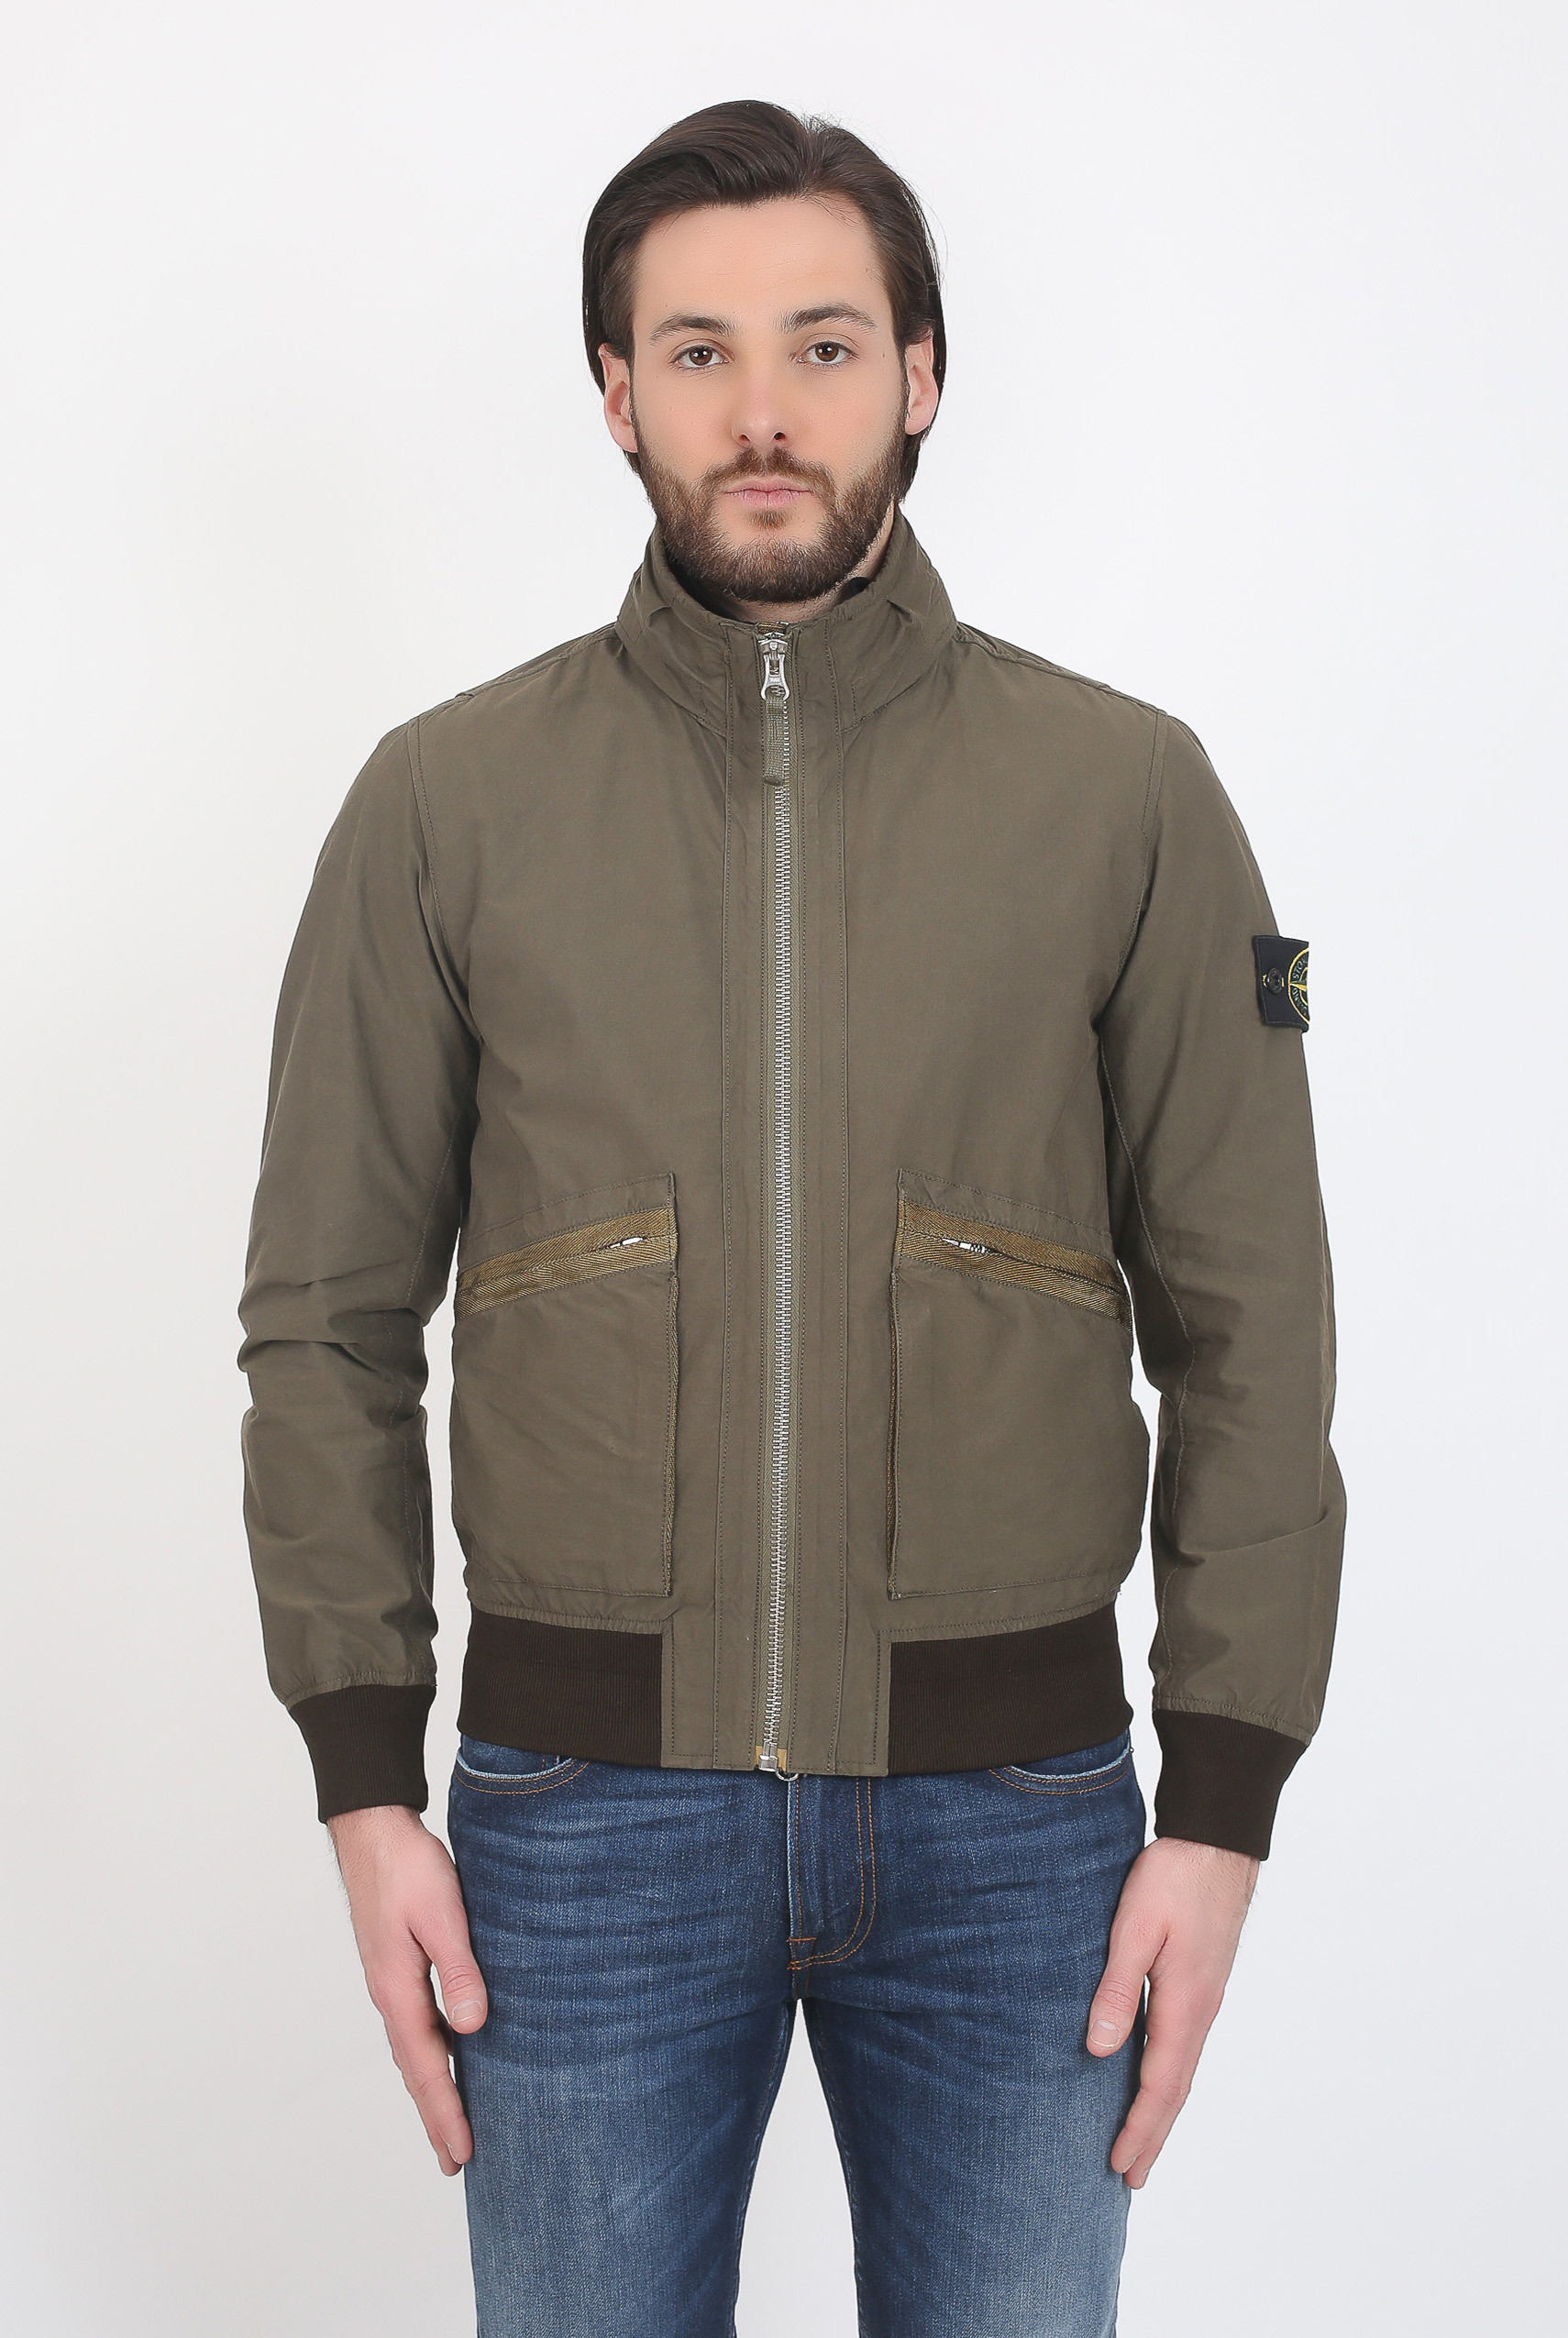 BLOUSON STONE ISLAND LIGHT COTTON NYLON TWILL KAKI 681543330-V0054